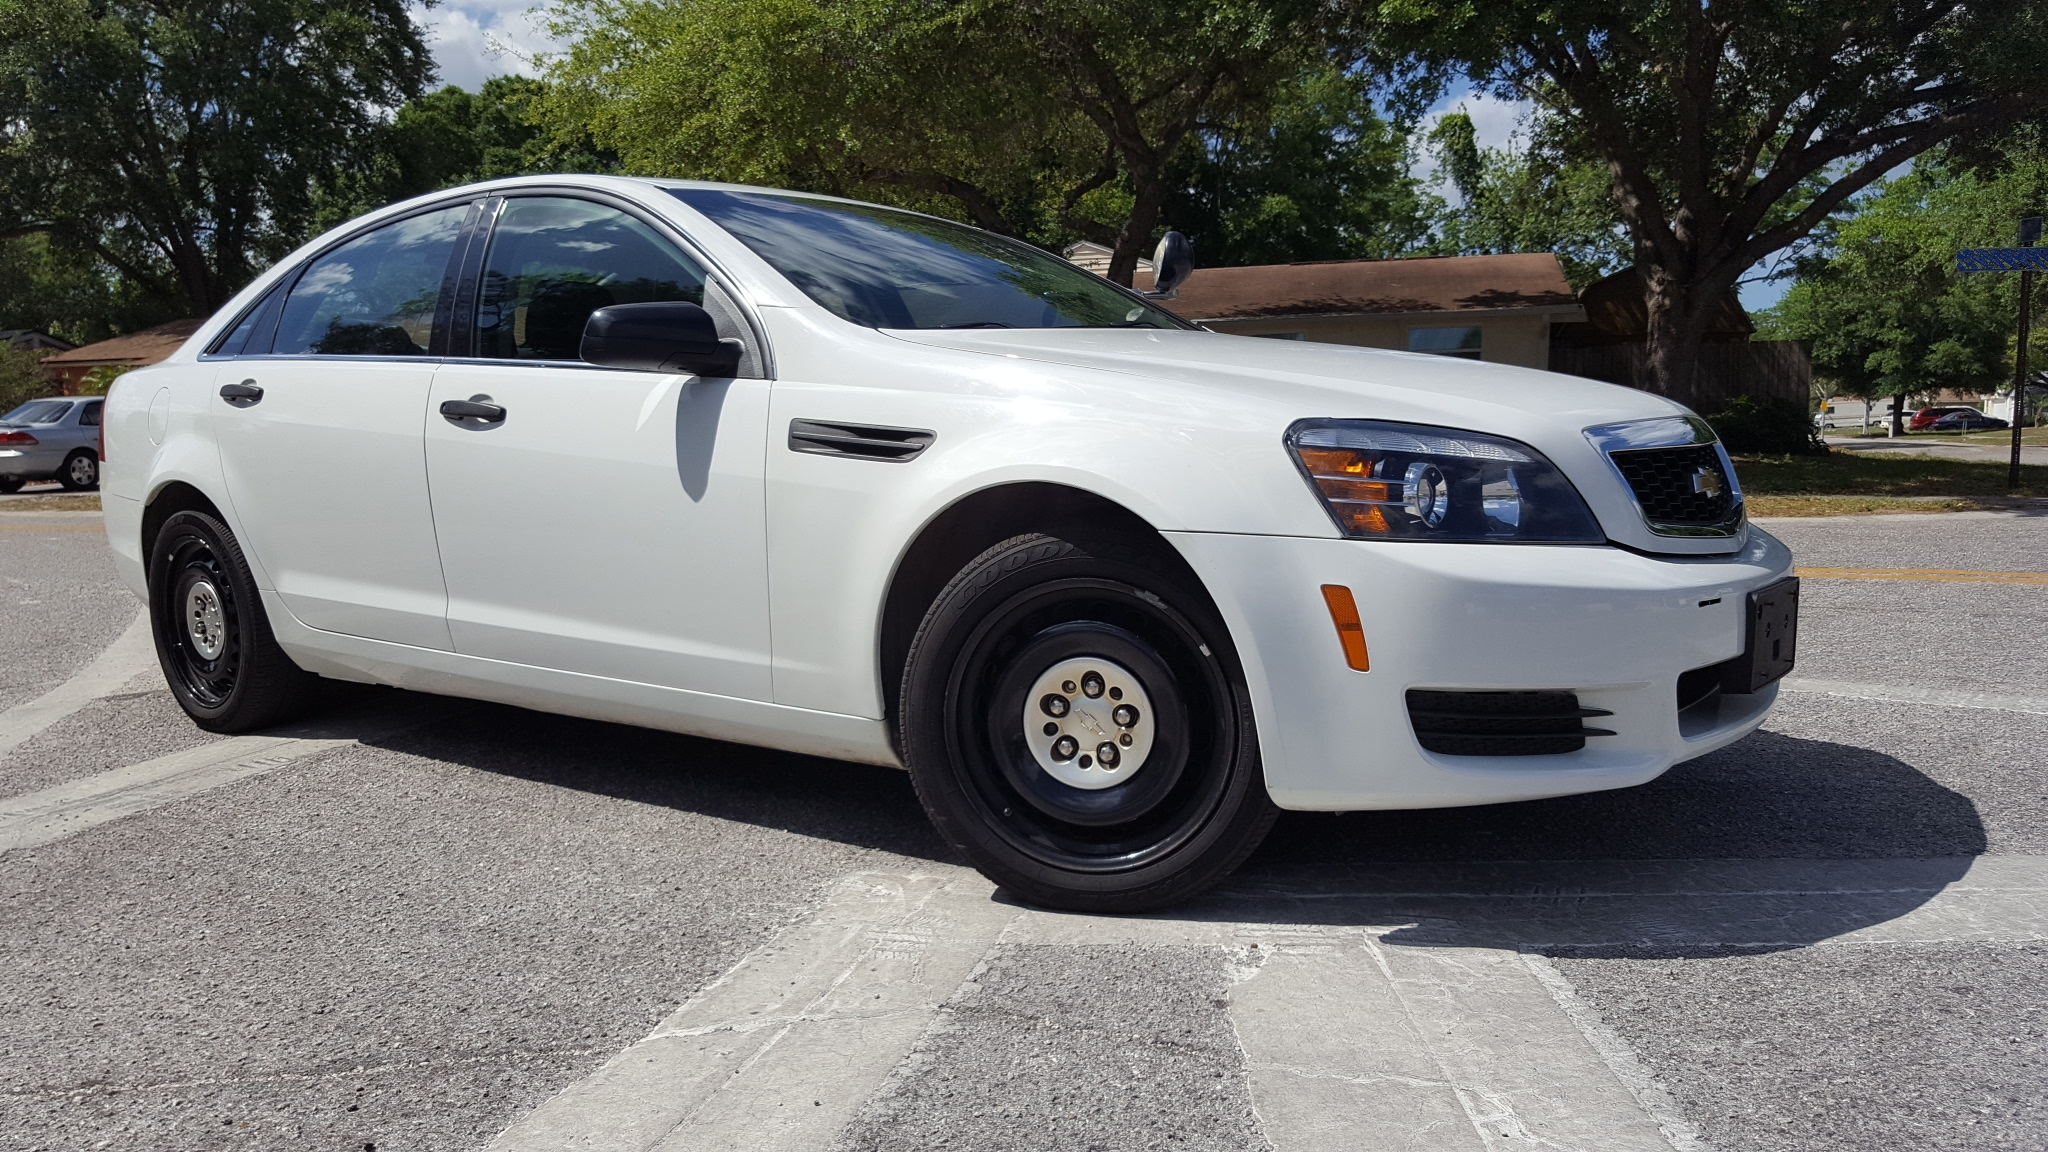 2013 Chevrolet Caprice 9C1 Police Patrol Vehicle 6.0 V8 ...